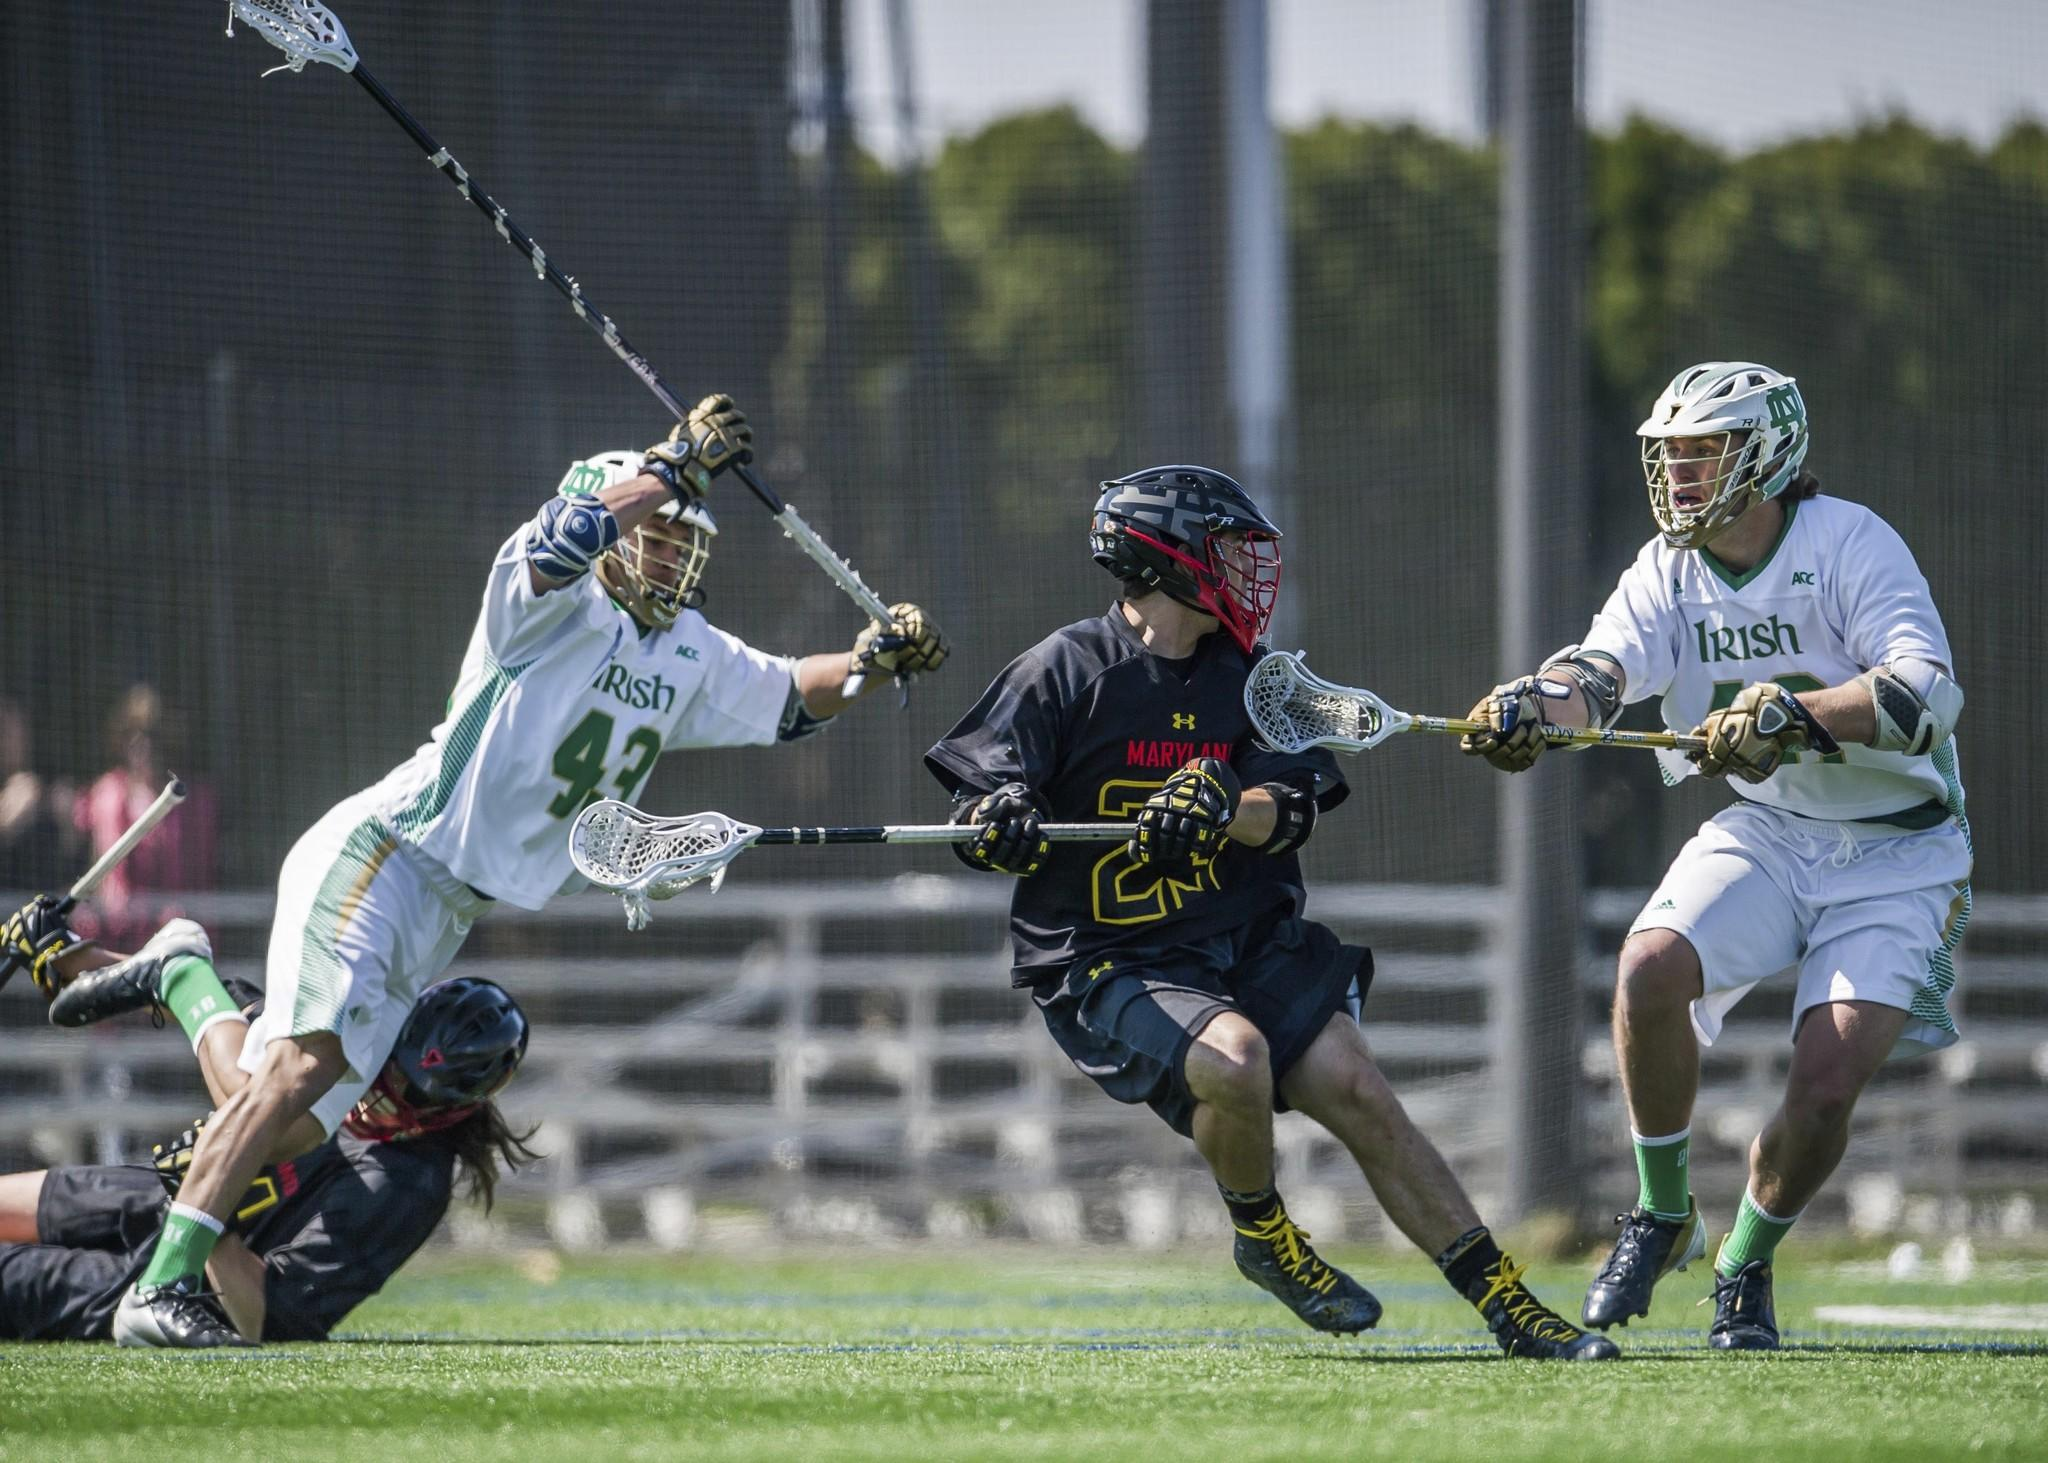 Maryland midfielder Connor Cannizzaro (middle) moves the ball as Notre Dame defensemen Matt Landis (43) and Matthew Collins (42) defend in the first quarter at Arlotta Stadium.